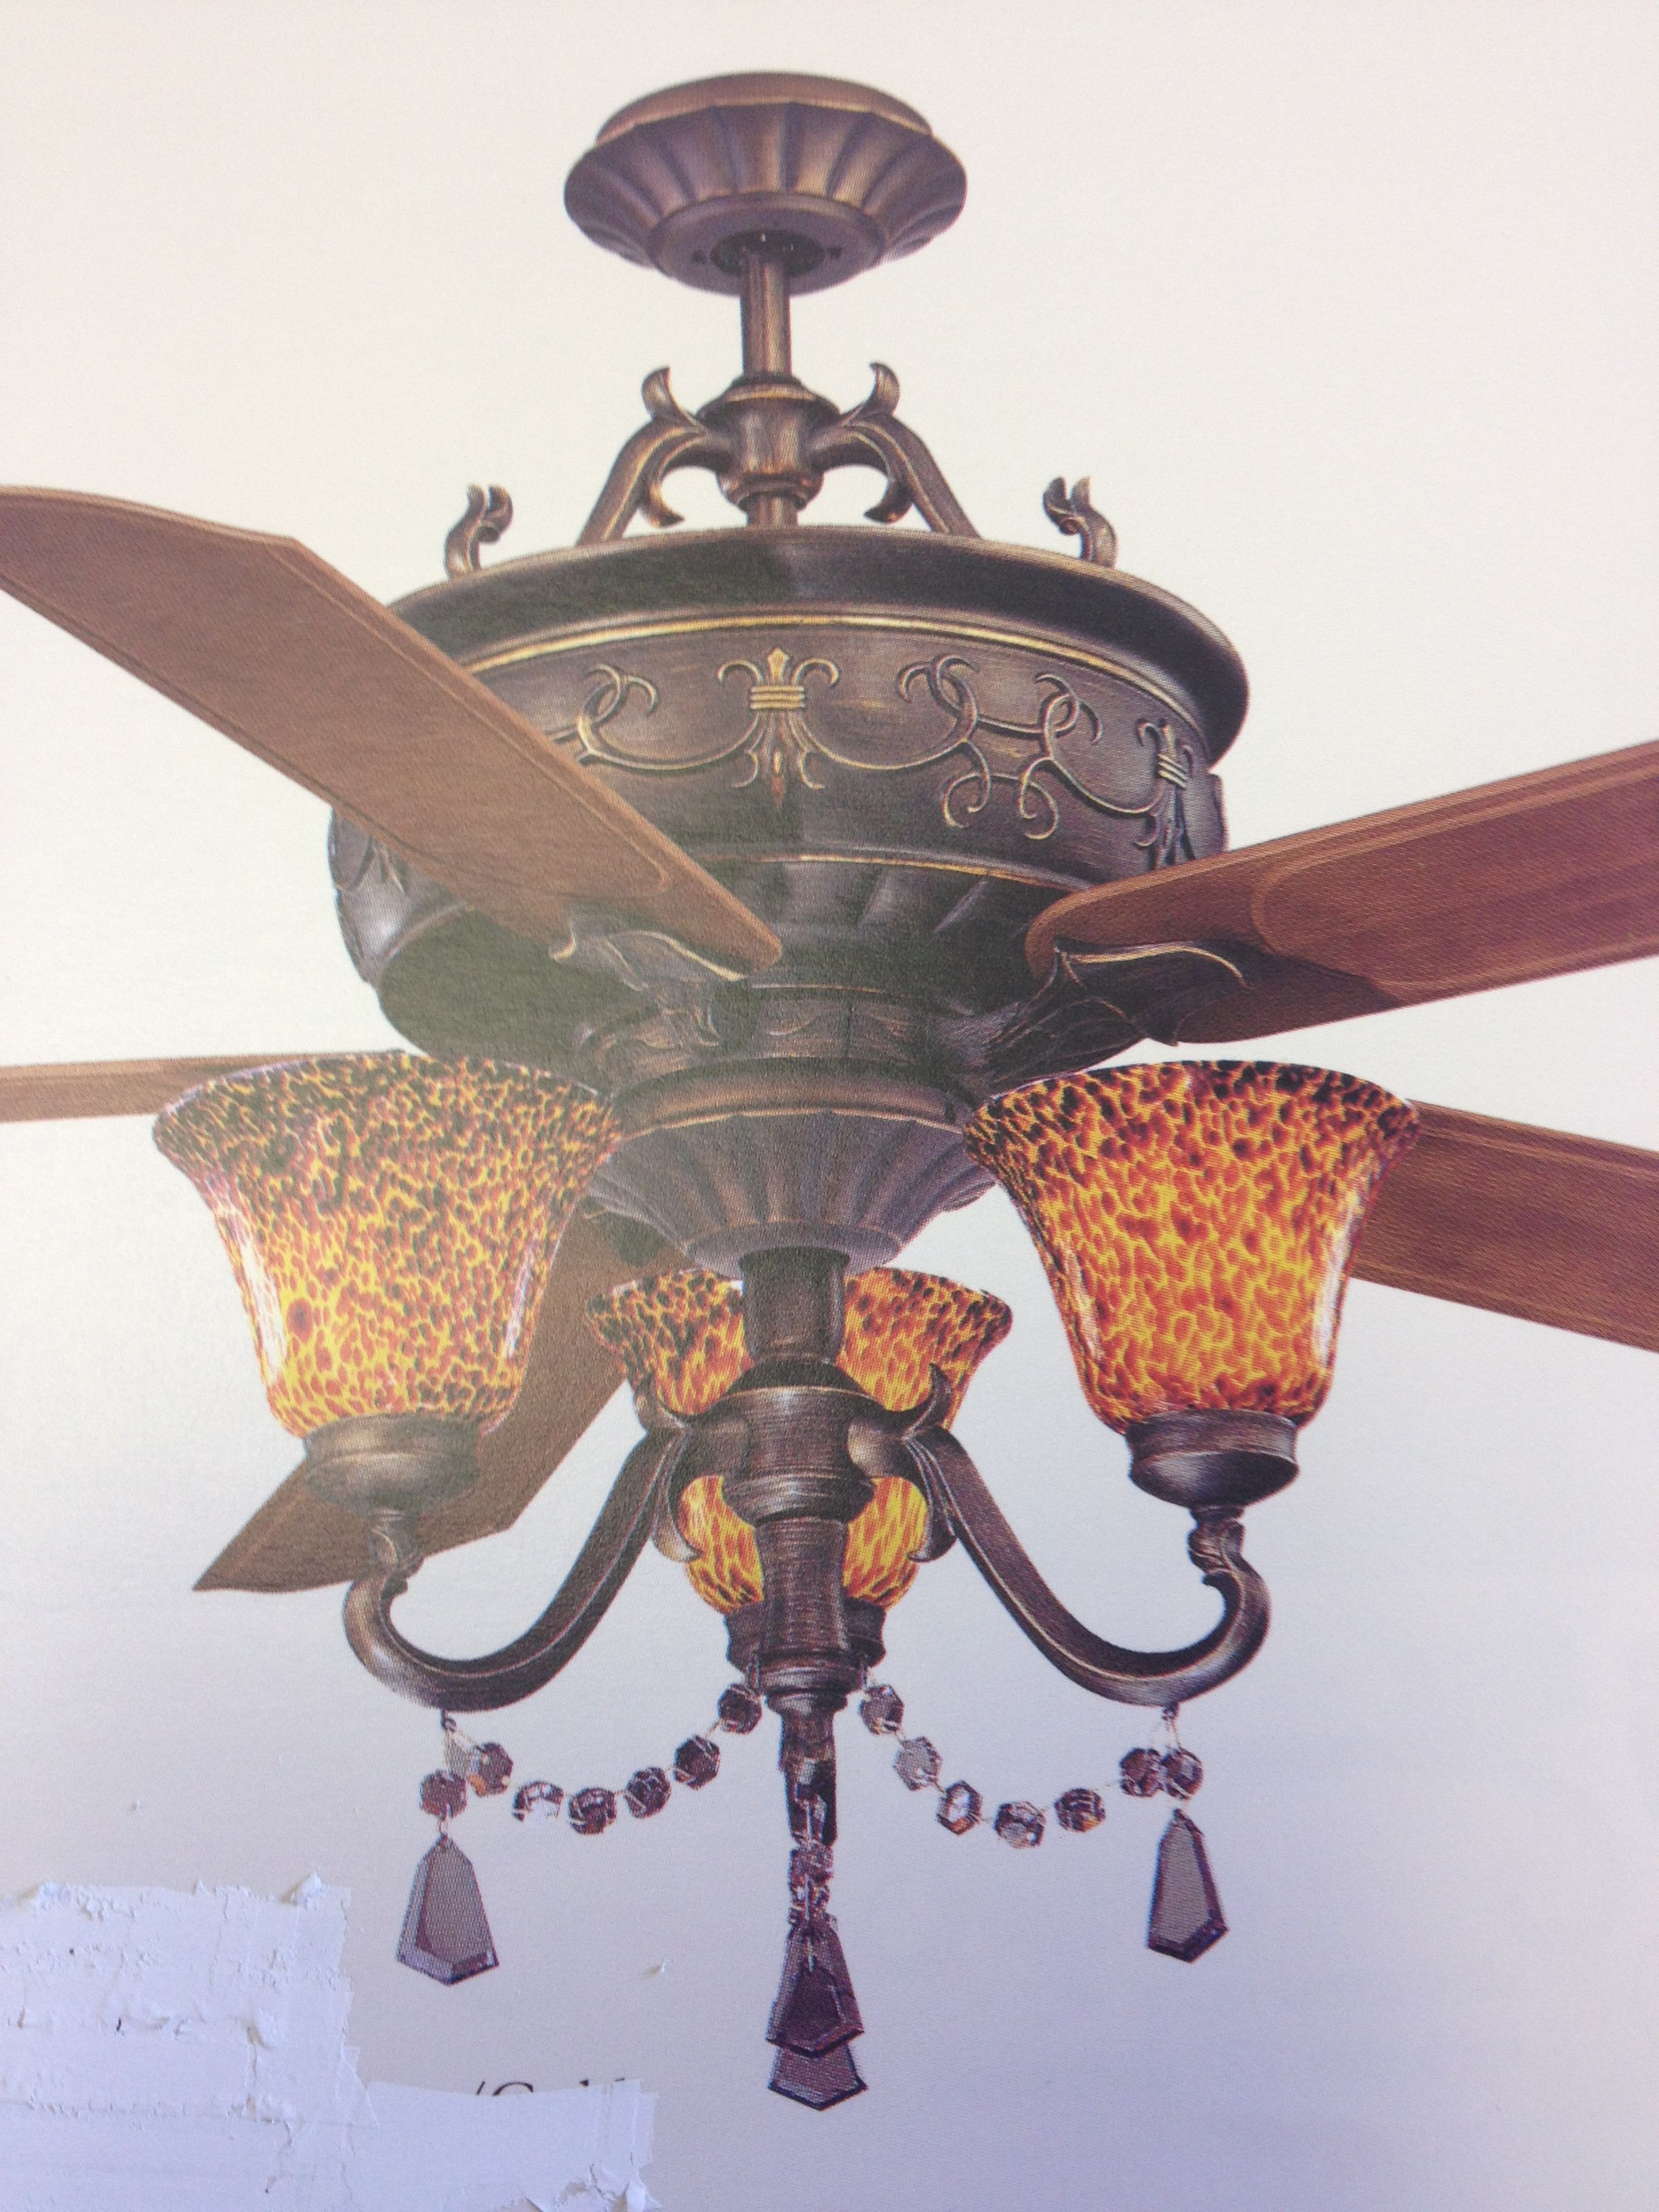 Beautiful Ceiling Fan With Leopard Glass Shades Design Divas Lighting Tulsa Ceiling Fan Tuscan Decorating Glass Shades